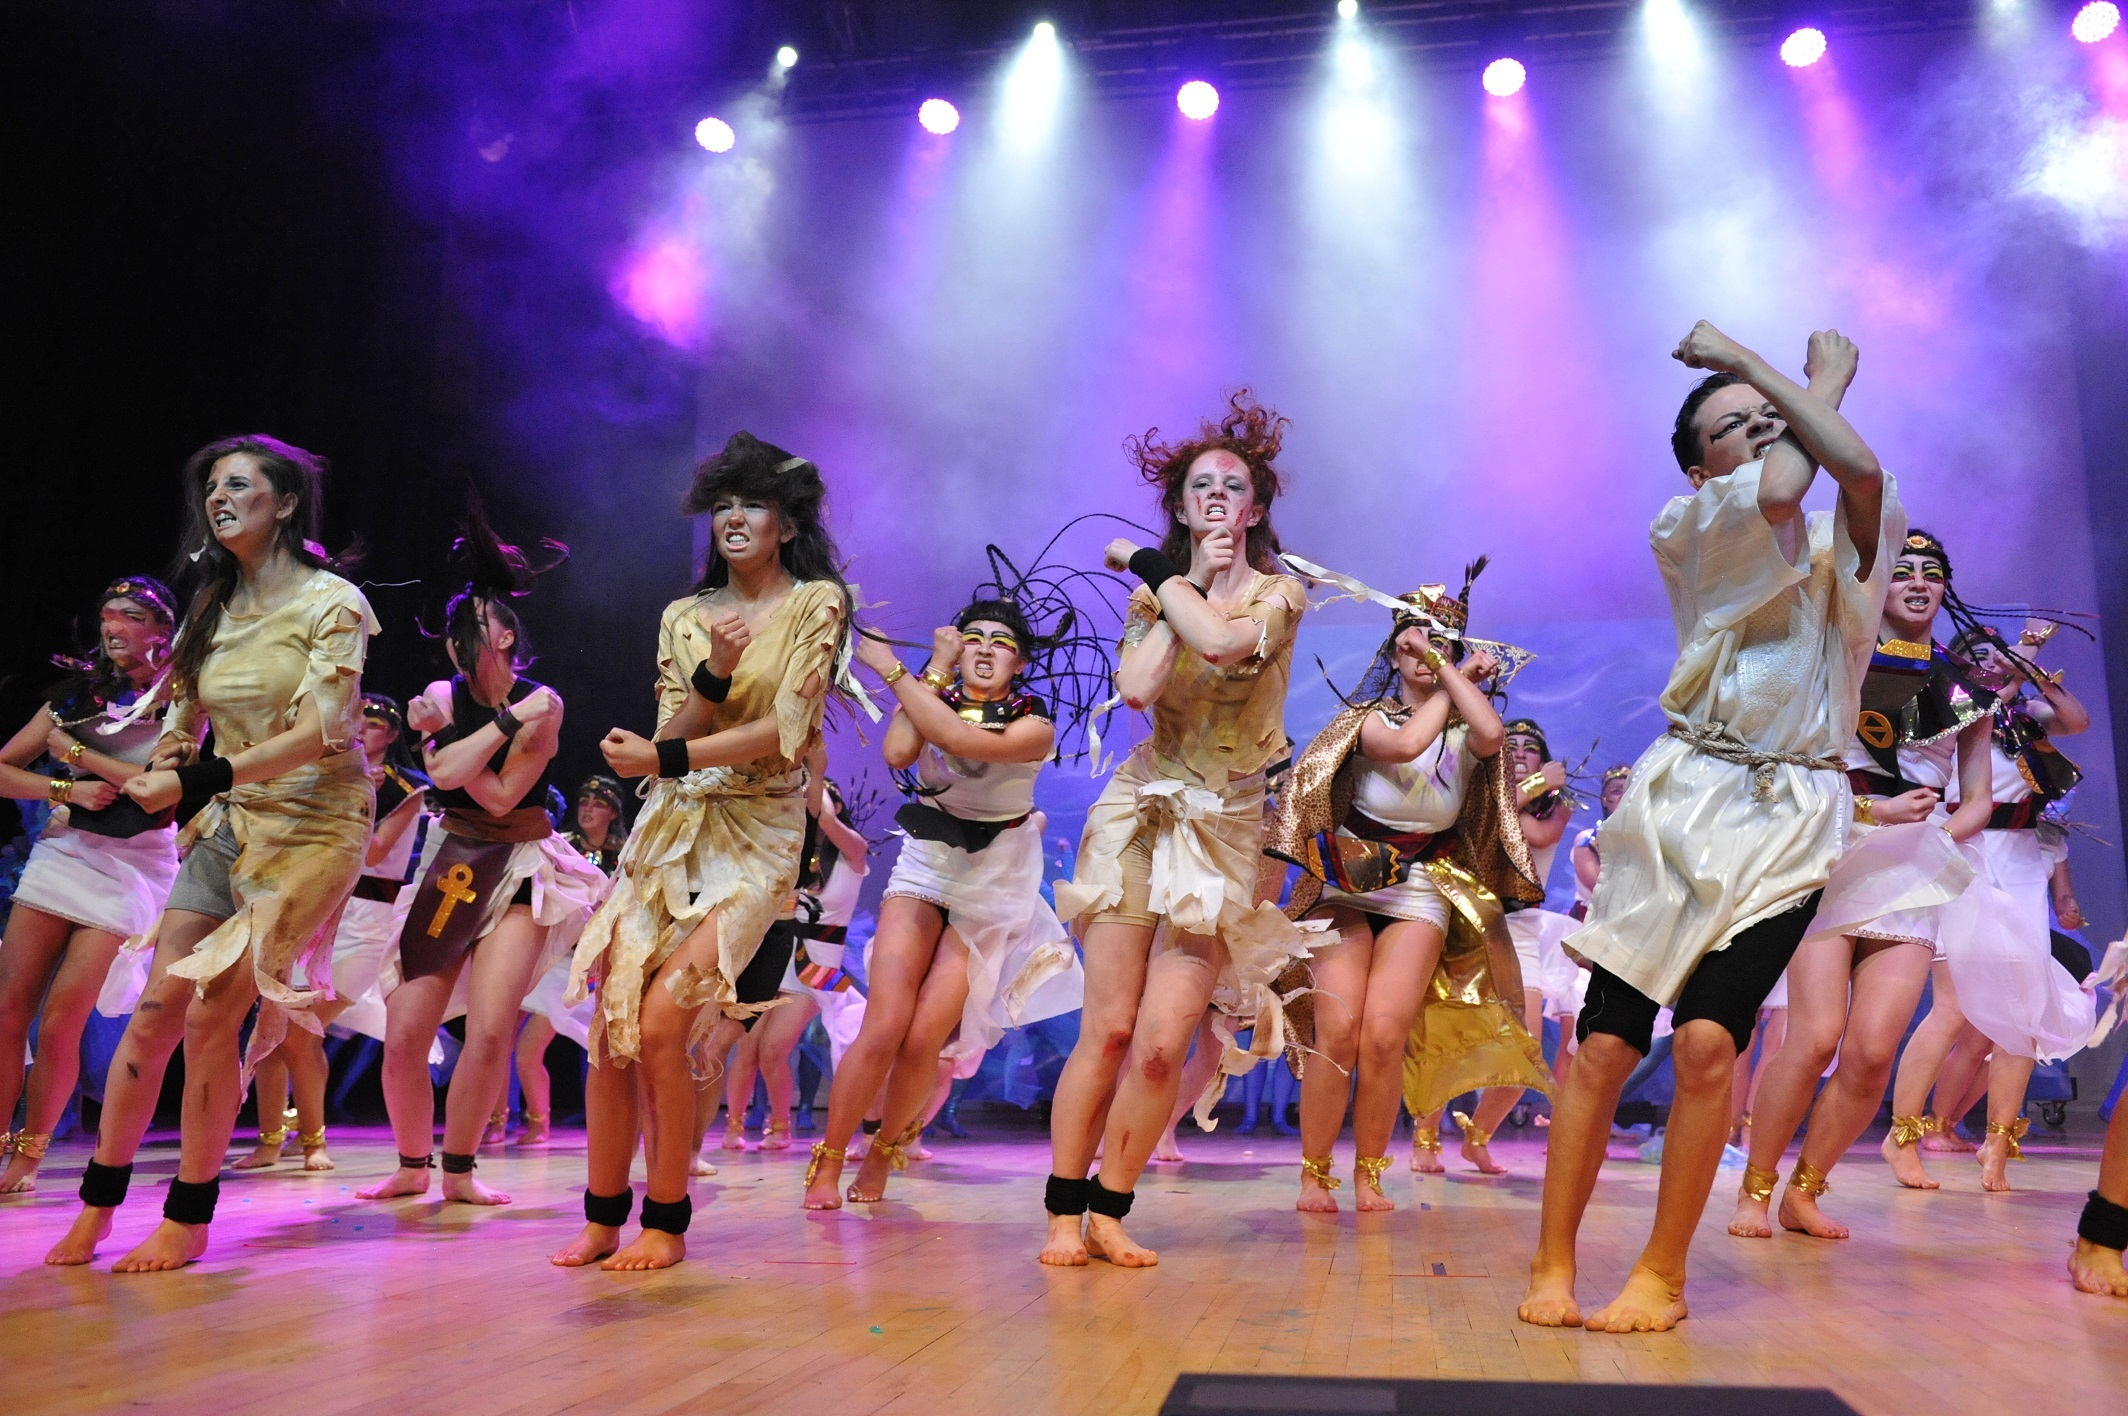 Students from Forfar Academy perform on stage